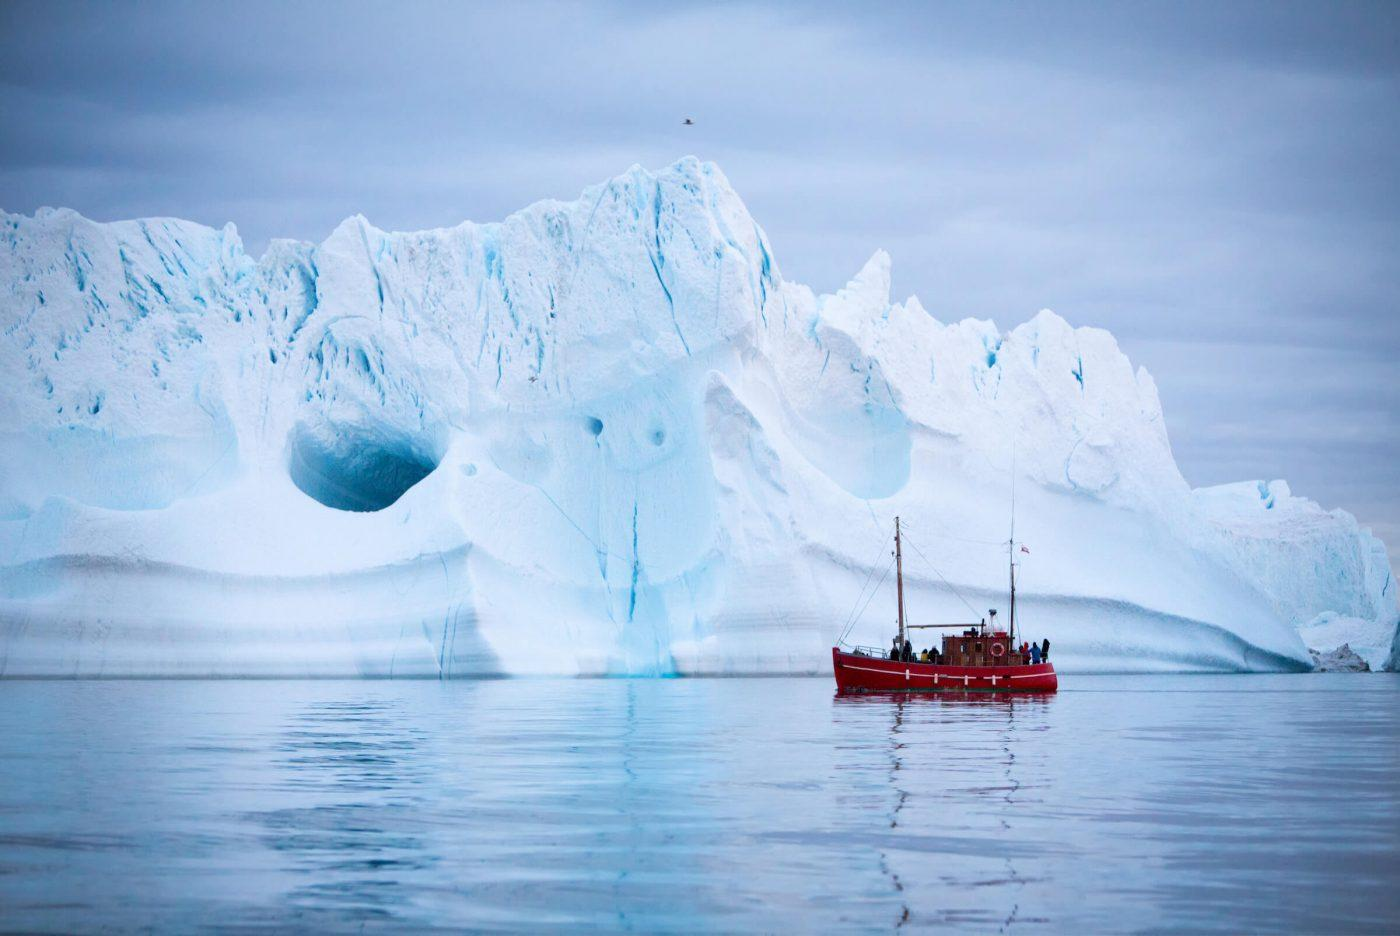 Tourists on a boat tour sailing by a giant iceberg near Ilulissat in North Greenland. By Paul Zizka